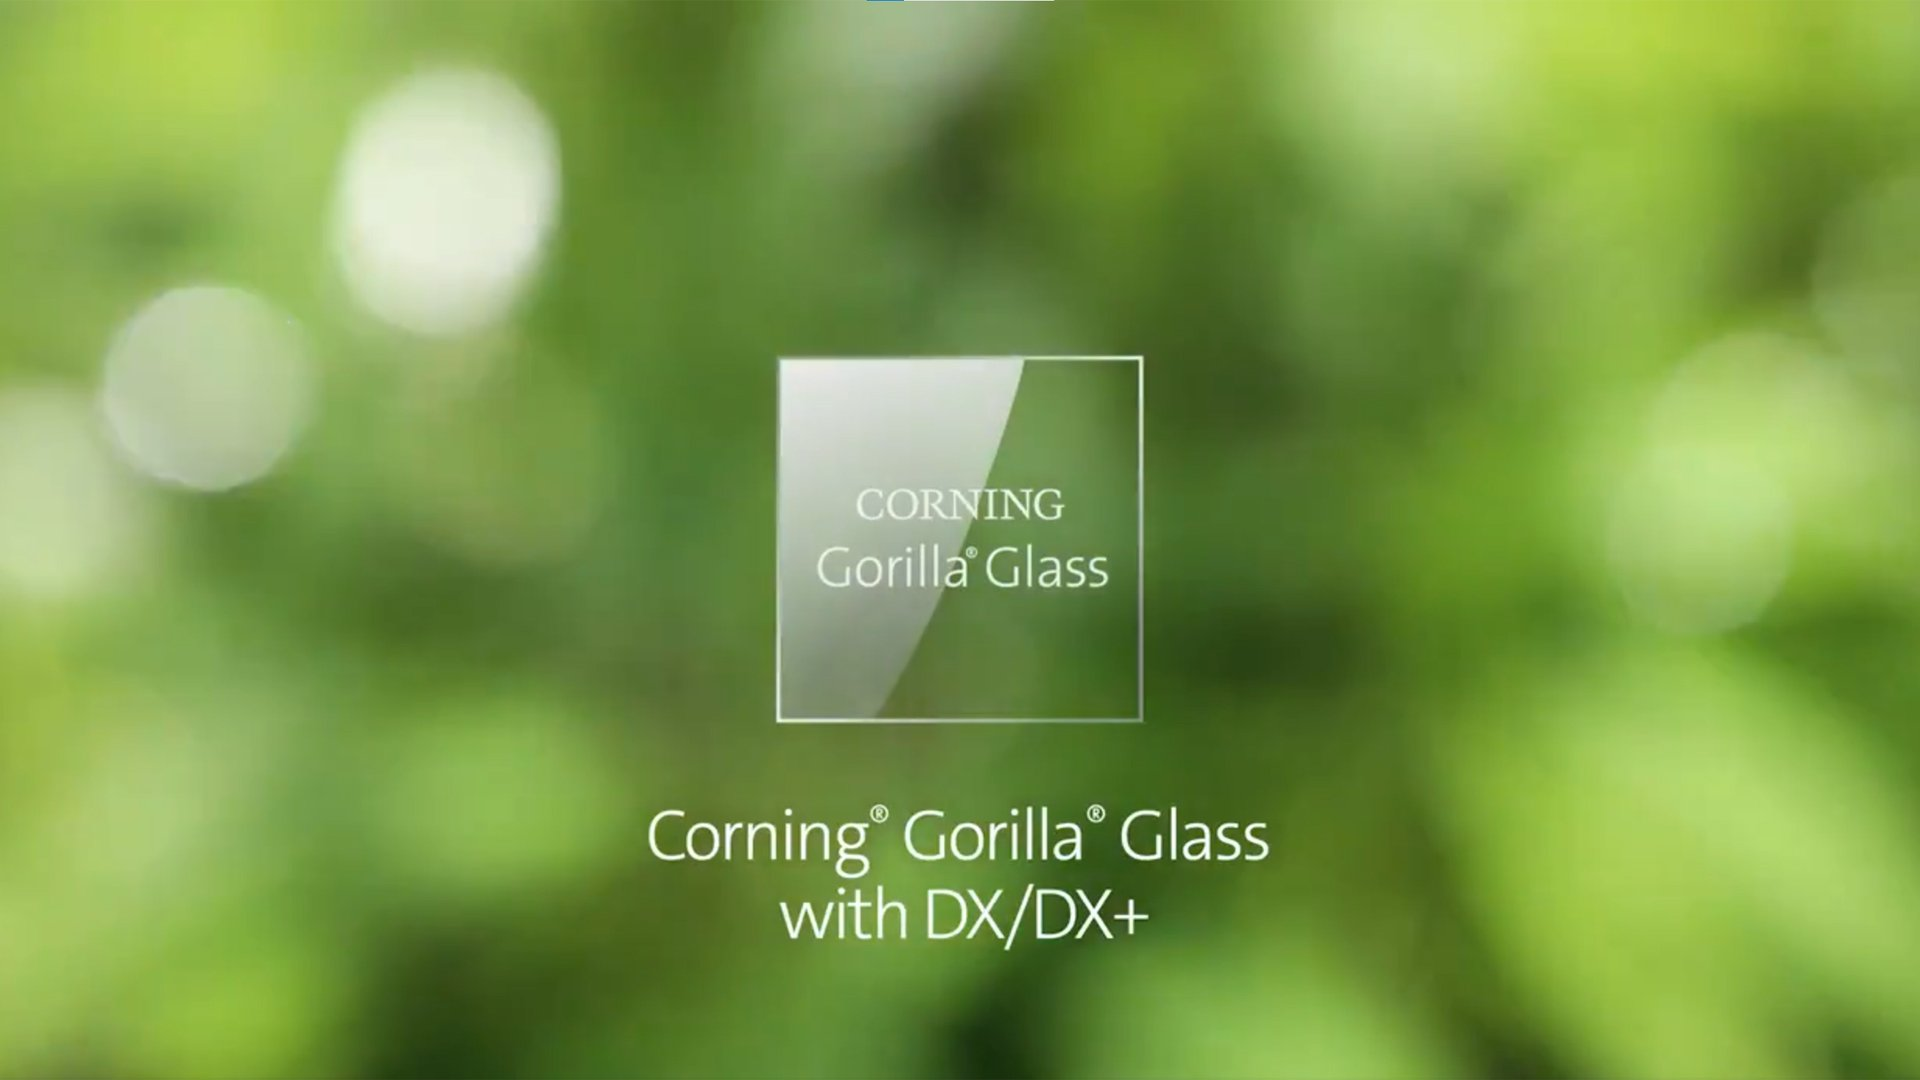 Samsung will be first to bring Corning's solid new camera glass to phones